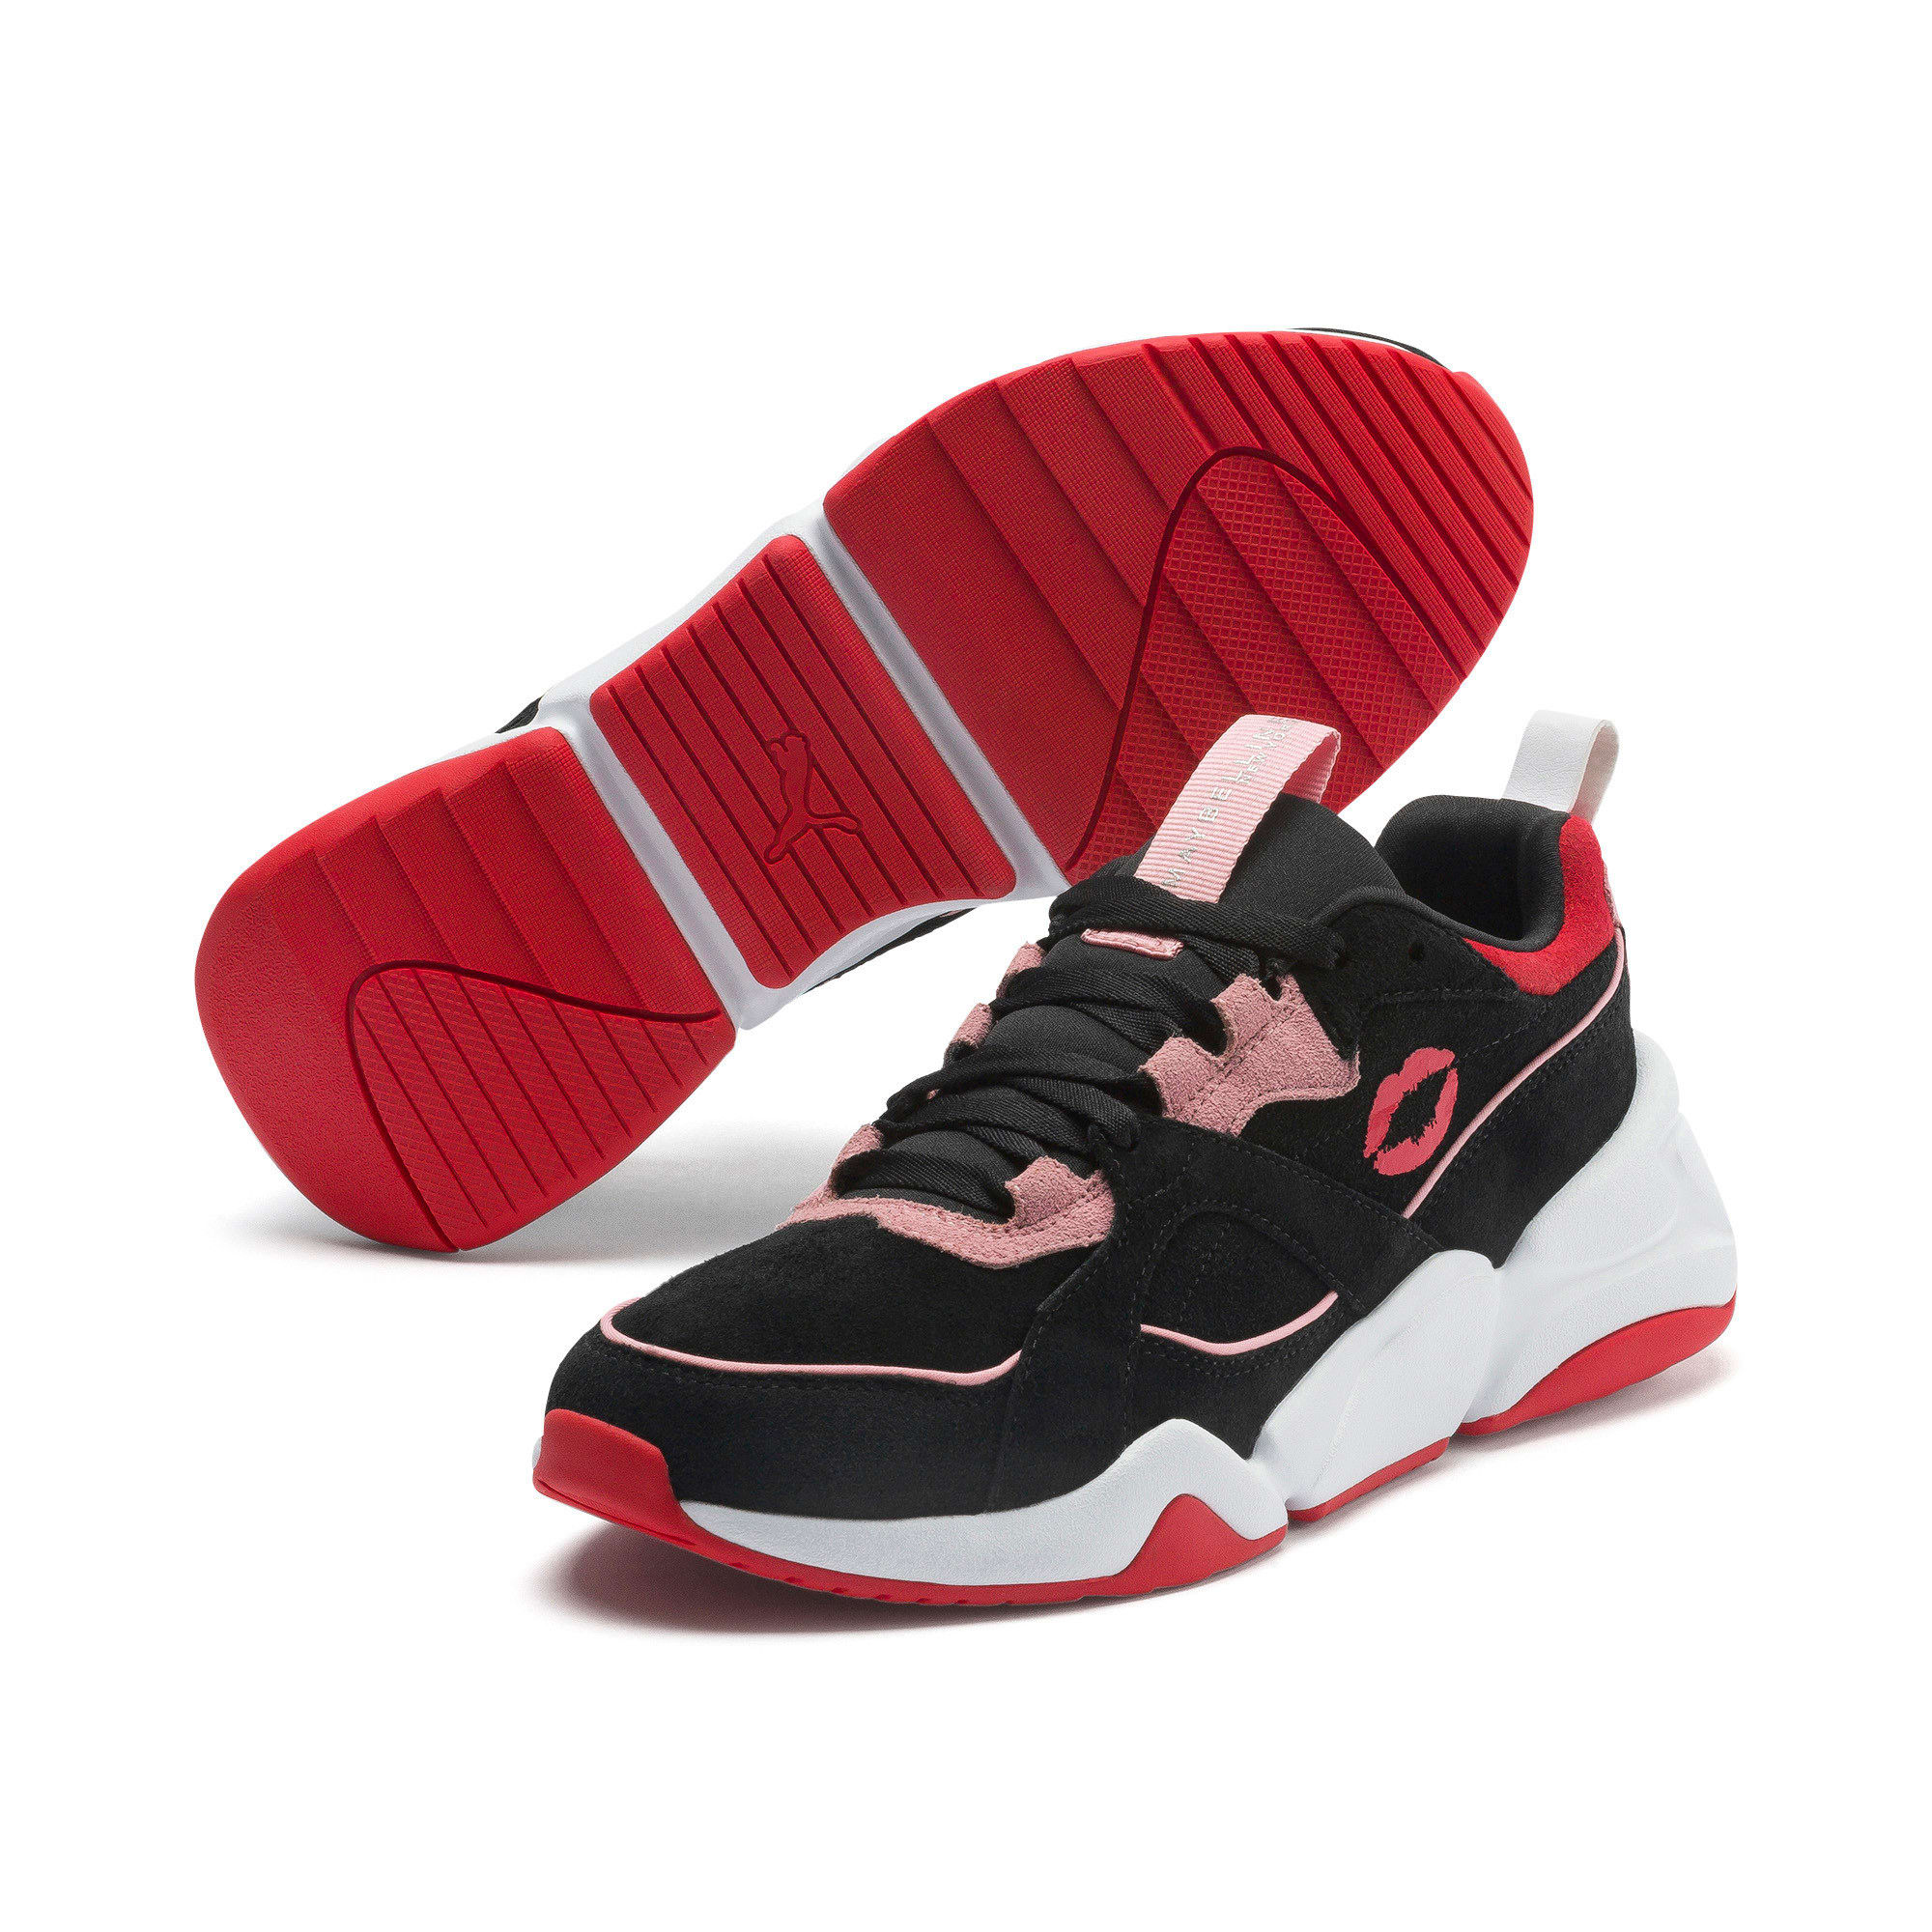 Thumbnail 2 of PUMA x MAYBELLINE Nova Women's Trainers, Puma Black-Candy Pink, medium